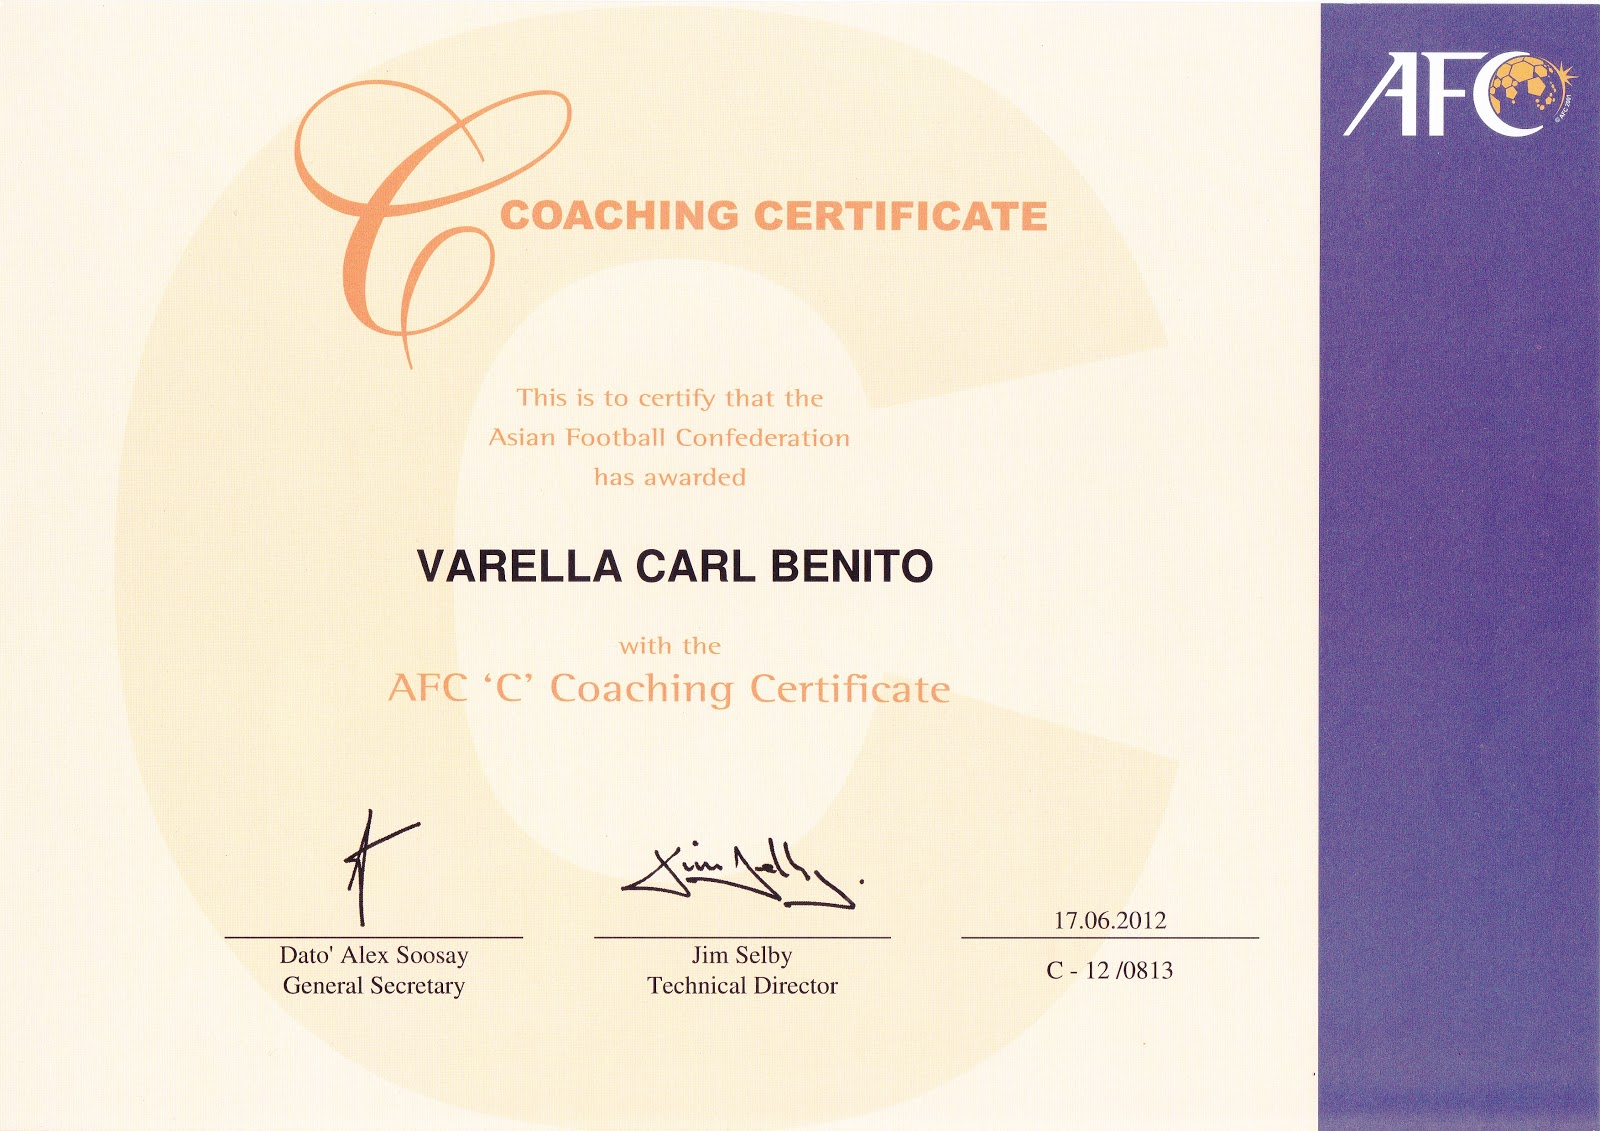 Coachcarl aquatics recreational lifestyle december 2012 at the age of 44 coach carl has attained his football coaching certificate with afc our heartfelt congratulation to him for his new achievement xflitez Choice Image